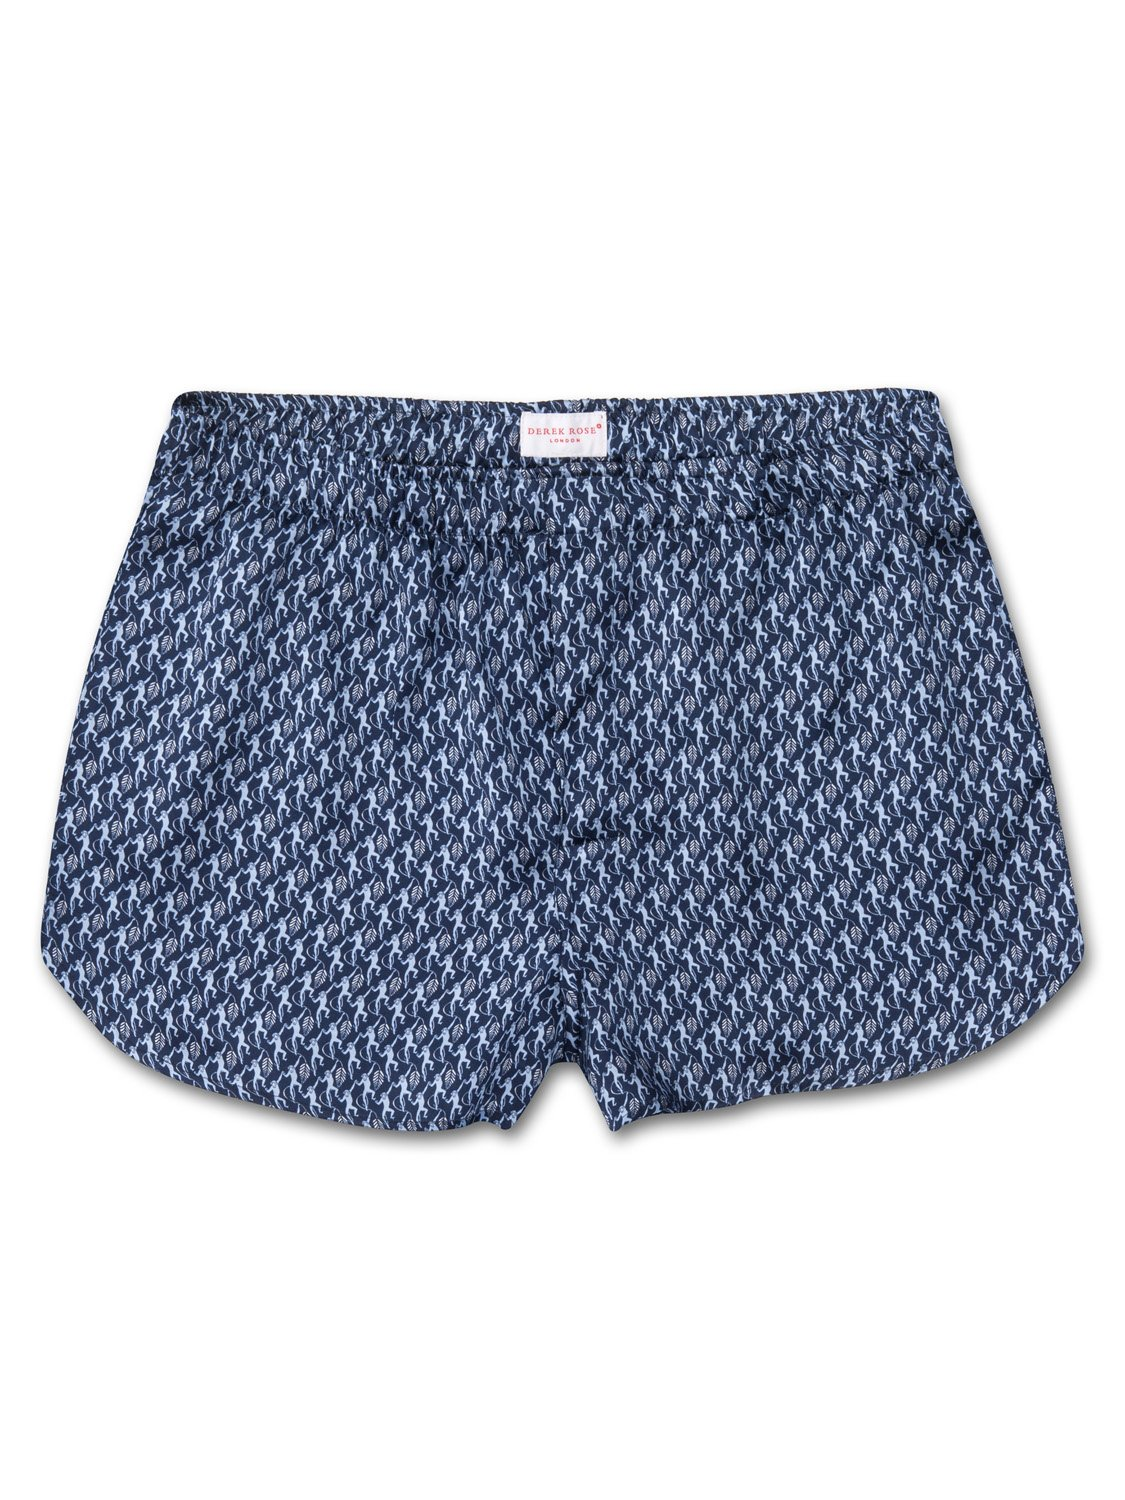 Men's Modern Fit Boxer Shorts Brindisi 12 Pure Silk Satin Navy